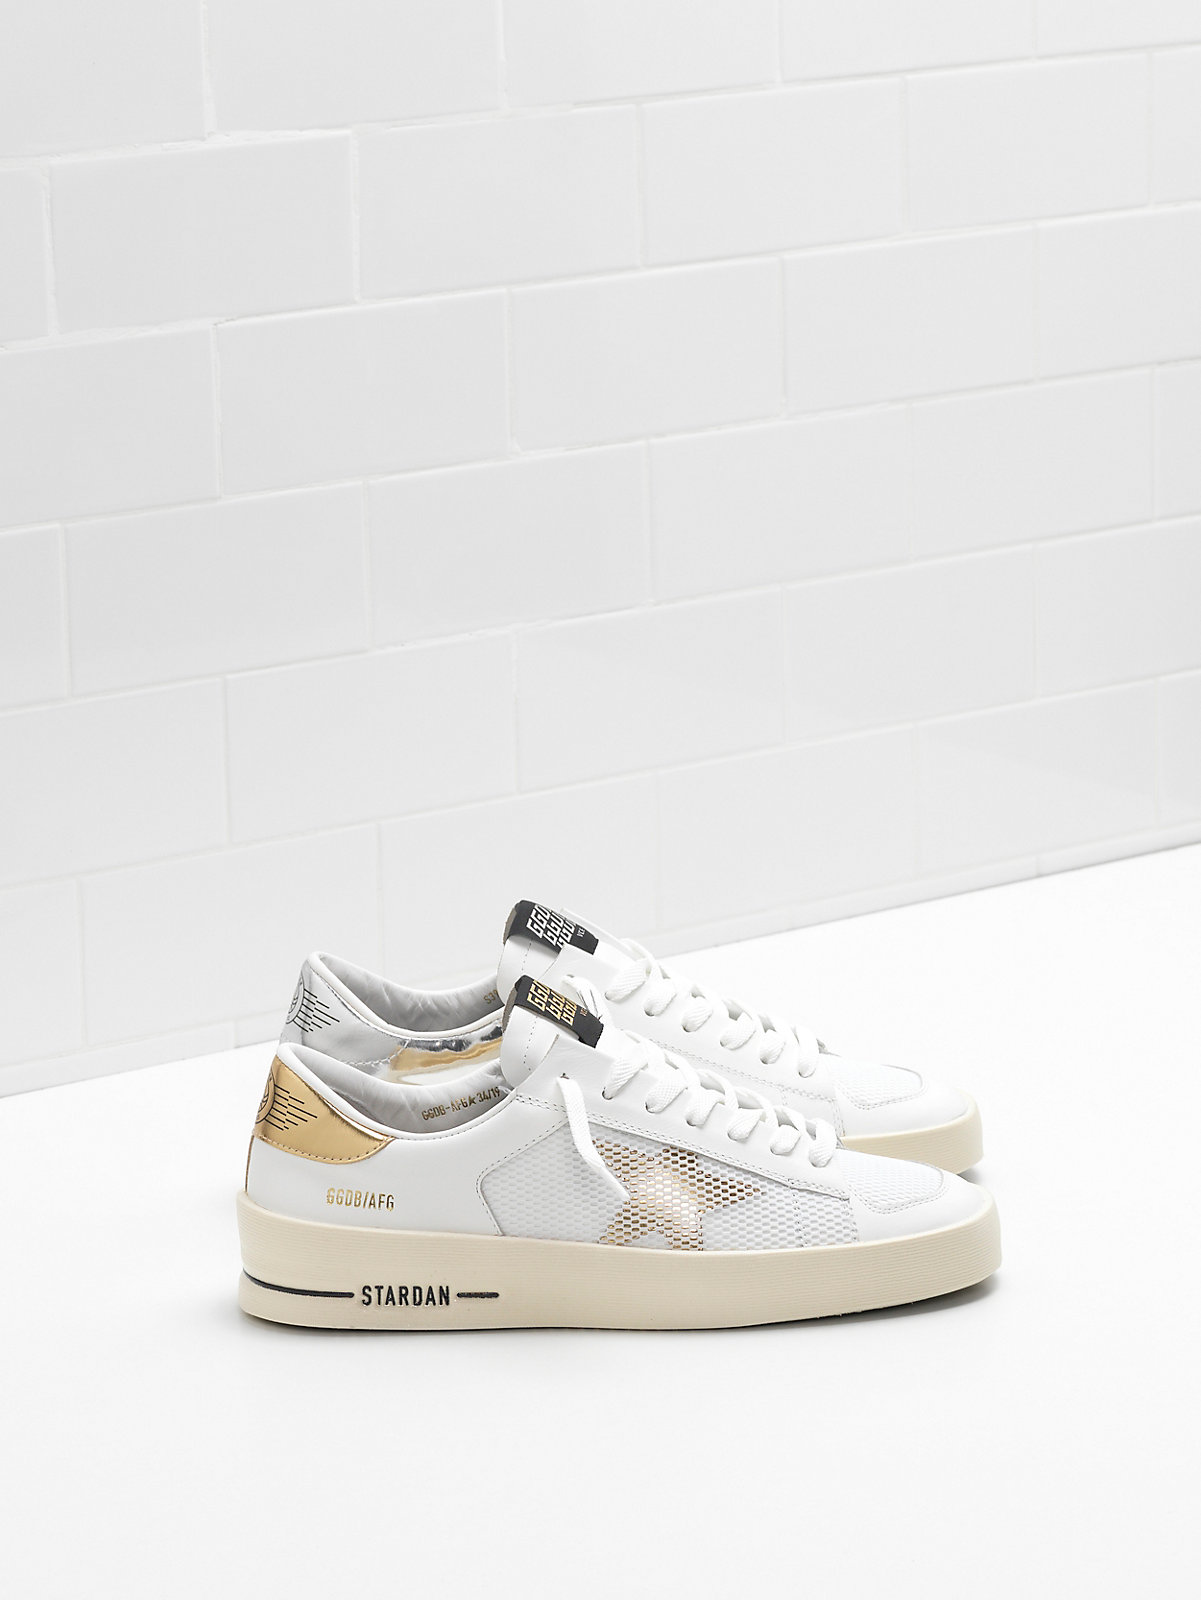 Kolor Magazine Every Golden Goose Sneaker Styles Without The Dirty Look Stardan.jpg